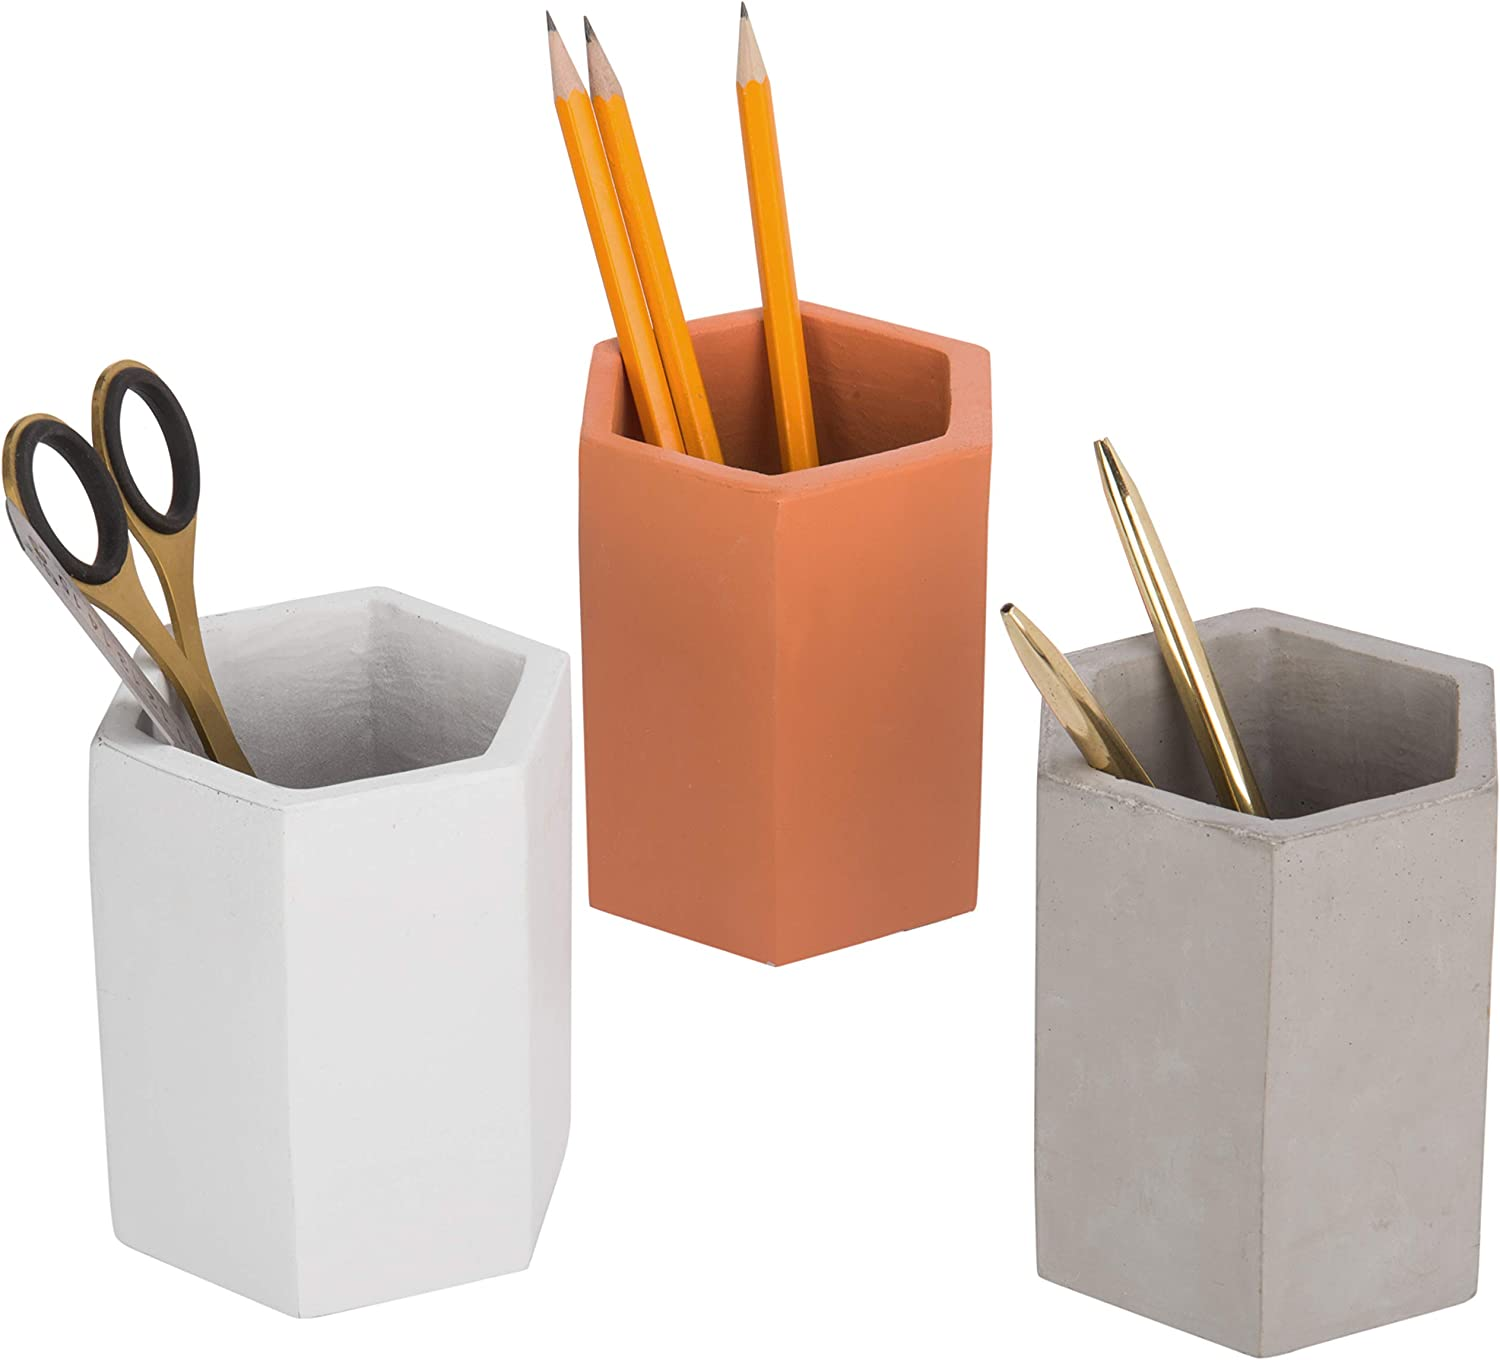 MyGift Set of 3 Multicolor (Grey, Orange, White) Clay Pencil Holder Office Supply Storage Cups